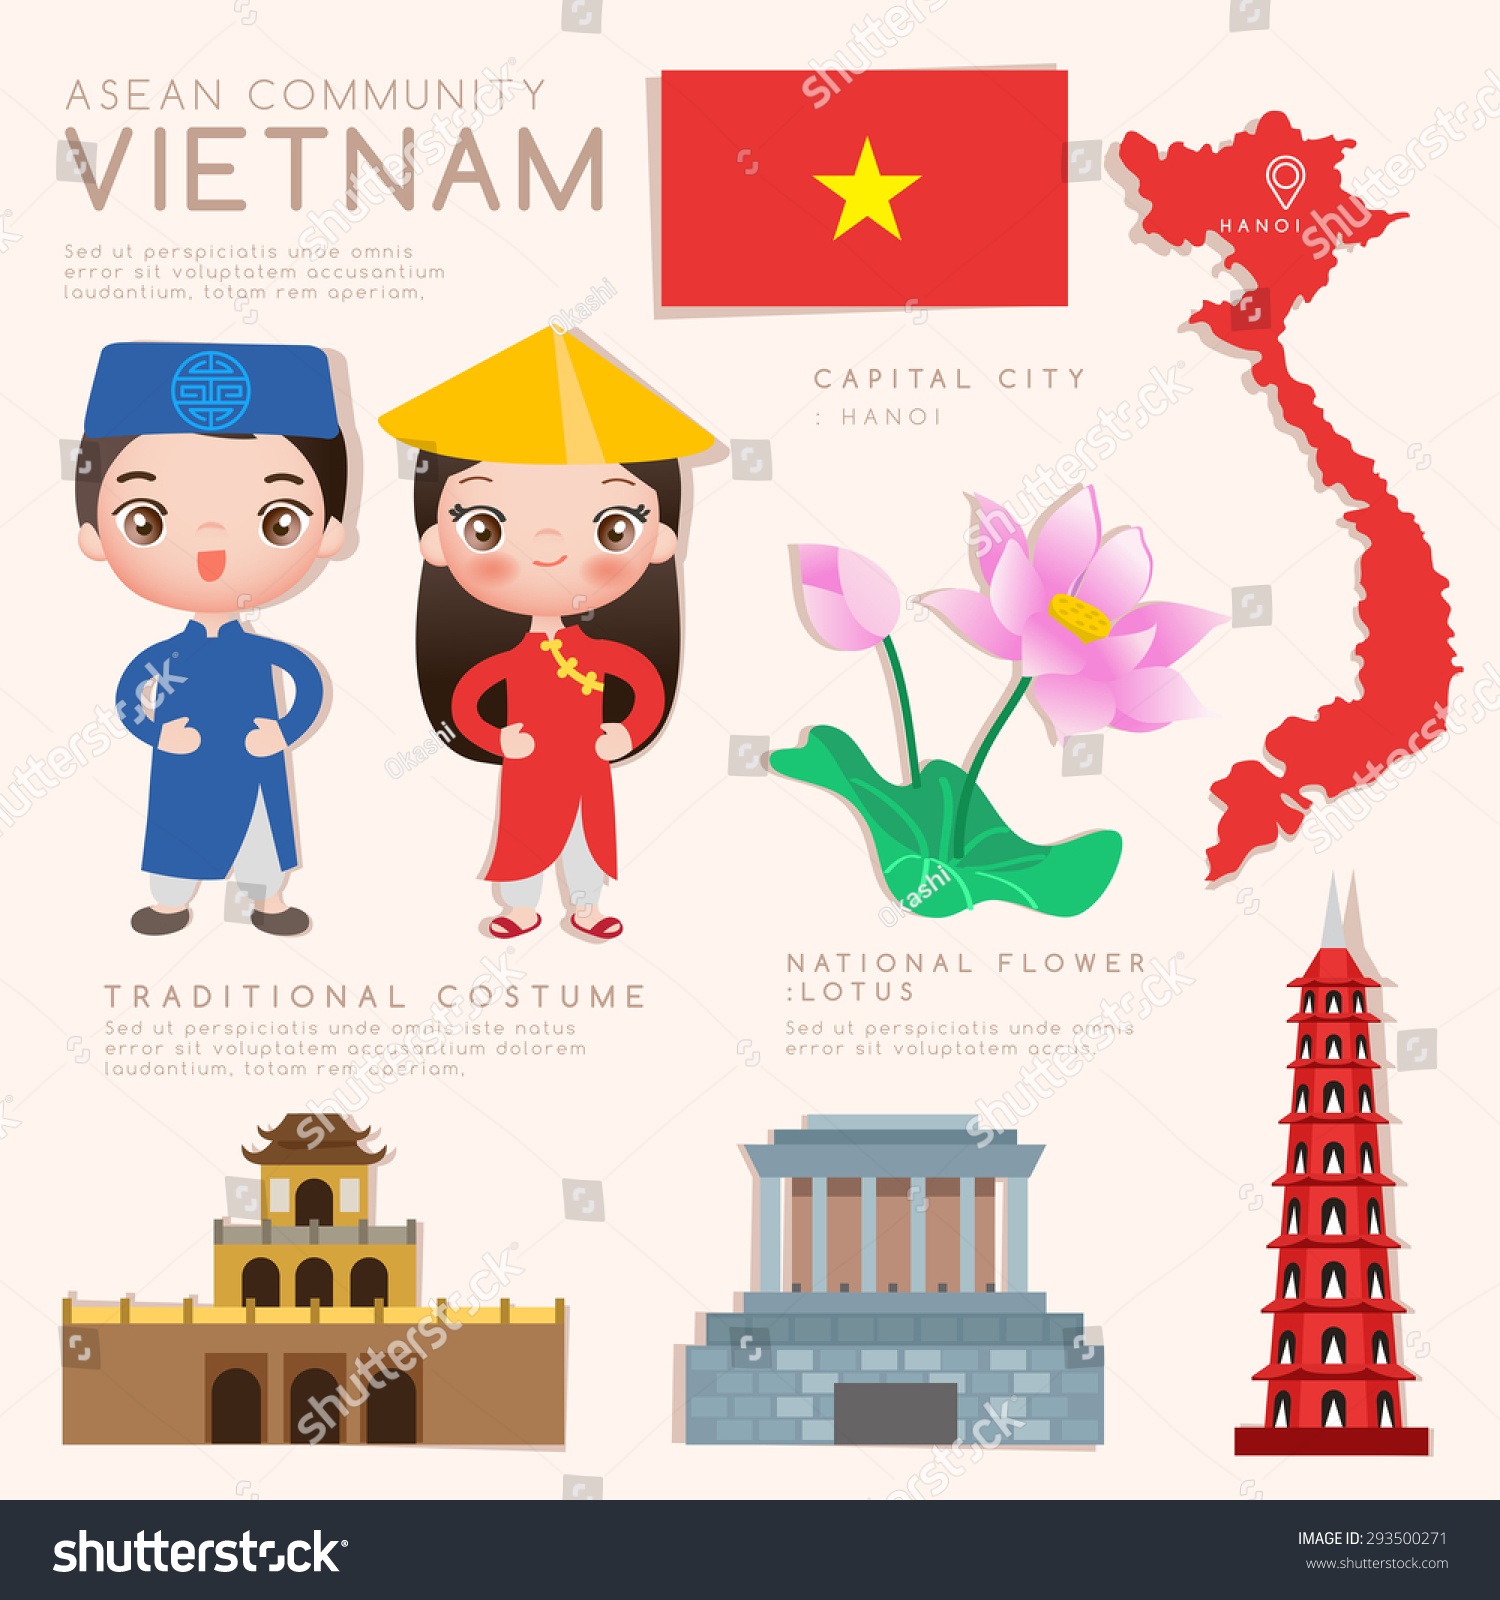 Vietnam Asean Economic Community Aec Infographic Stock